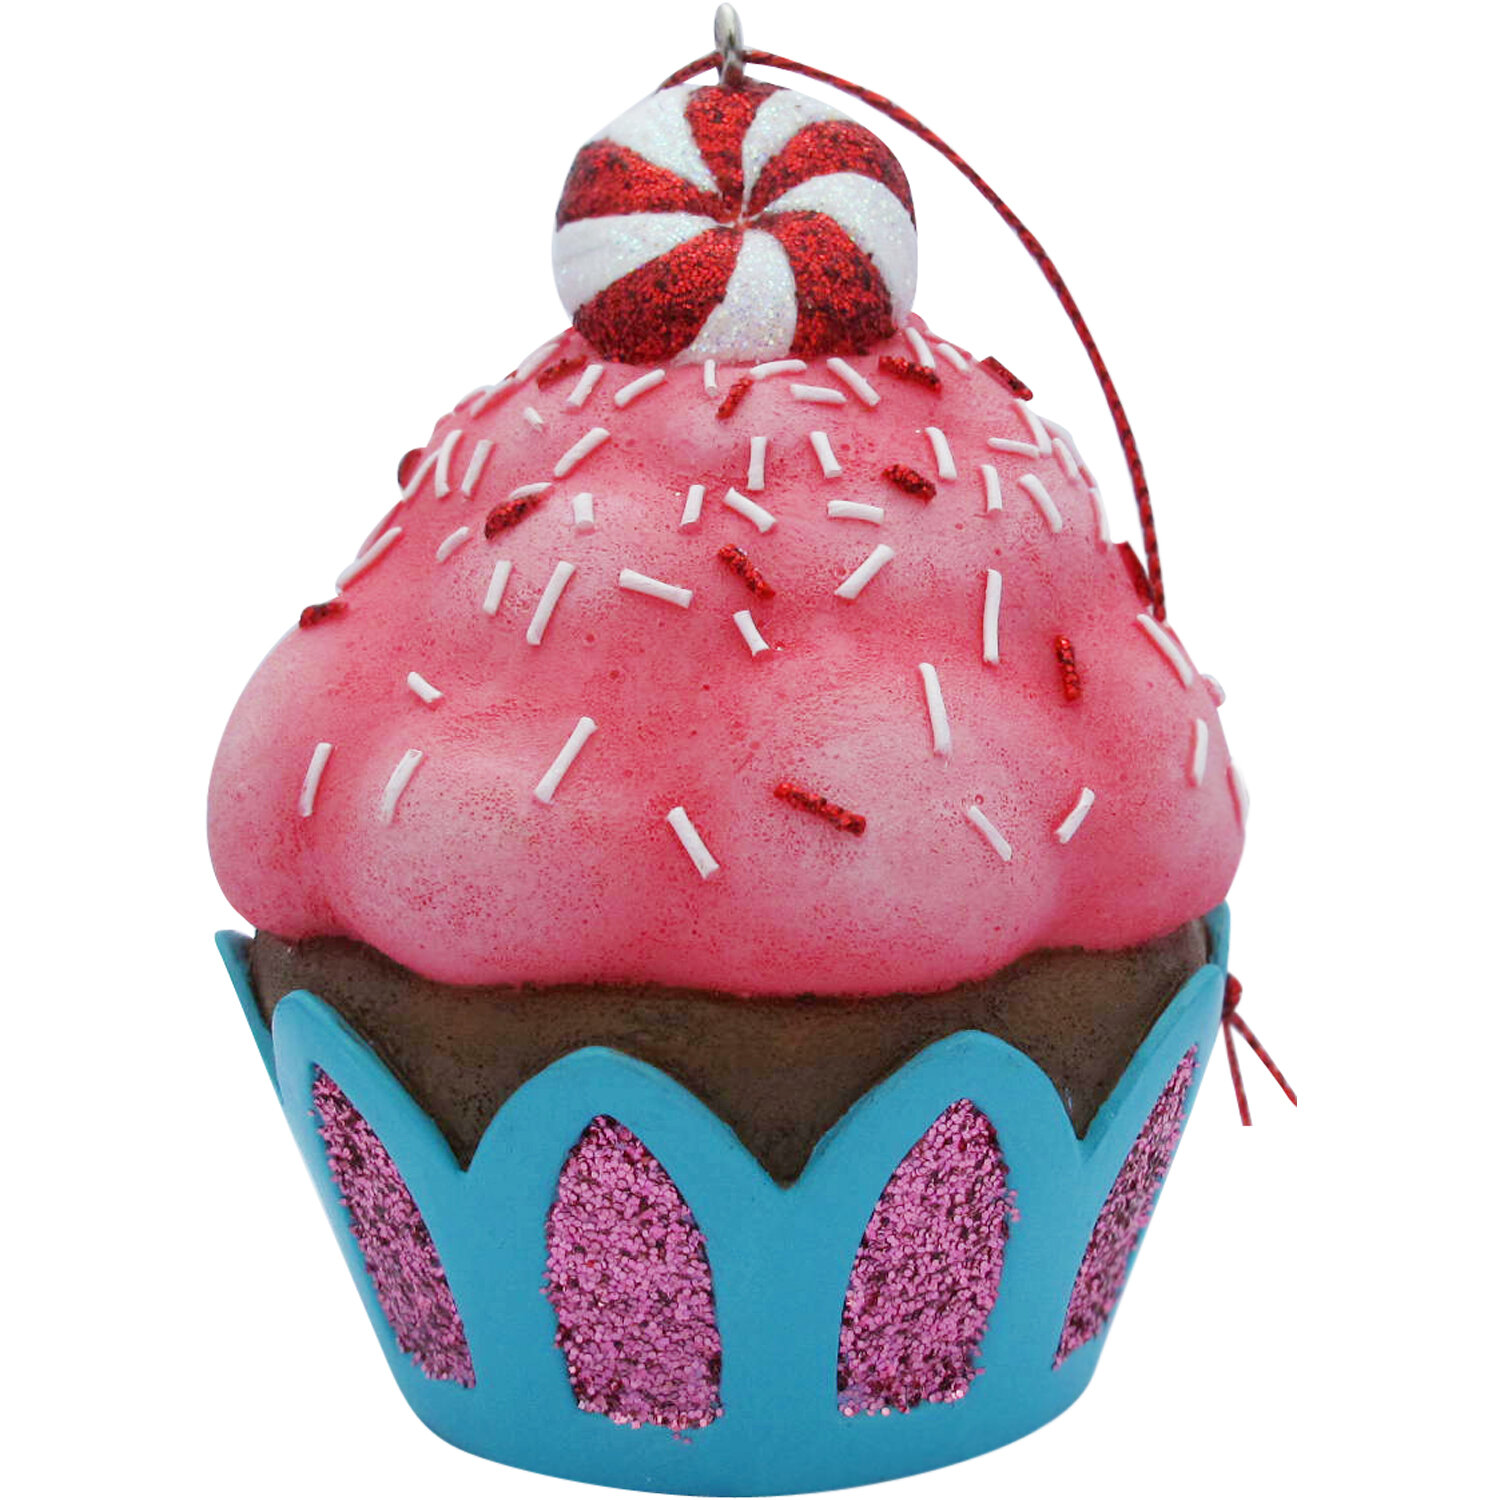 The Holiday Aisle Peppermint Top Cupcake Christmas Tree Ornament Reviews Wayfair